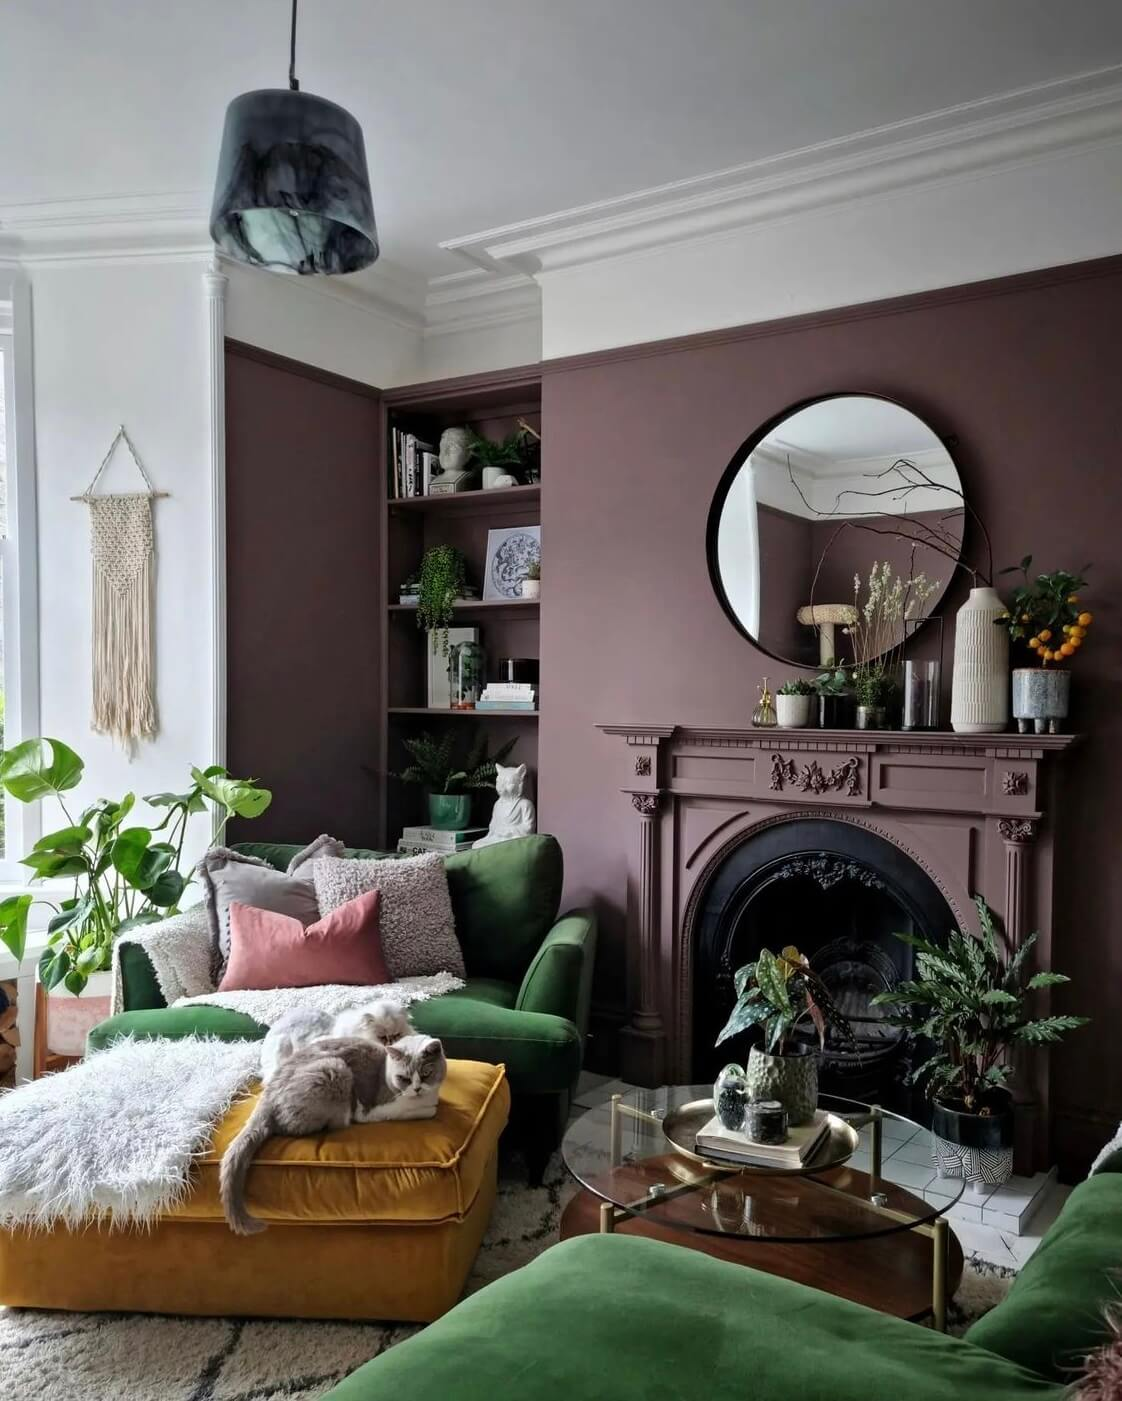 Heather's Colorful Eclectic Home in Scotland